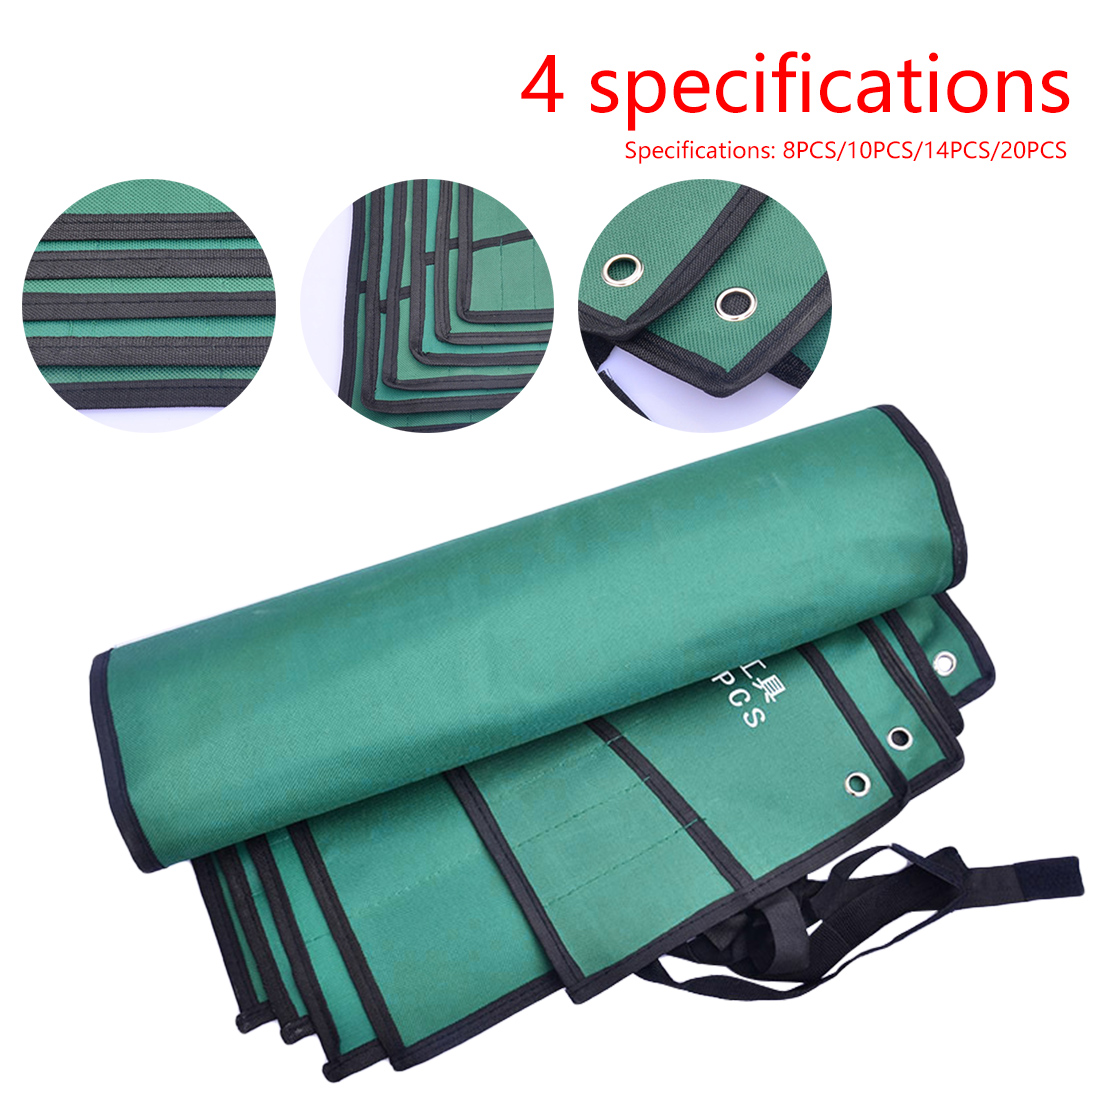 8/10/14/20 Pockets Double Opening Offset Ring Spanner Kit Case Tool Bag Spanner Wrench Roll Up Storage Organizer Bag Pouch